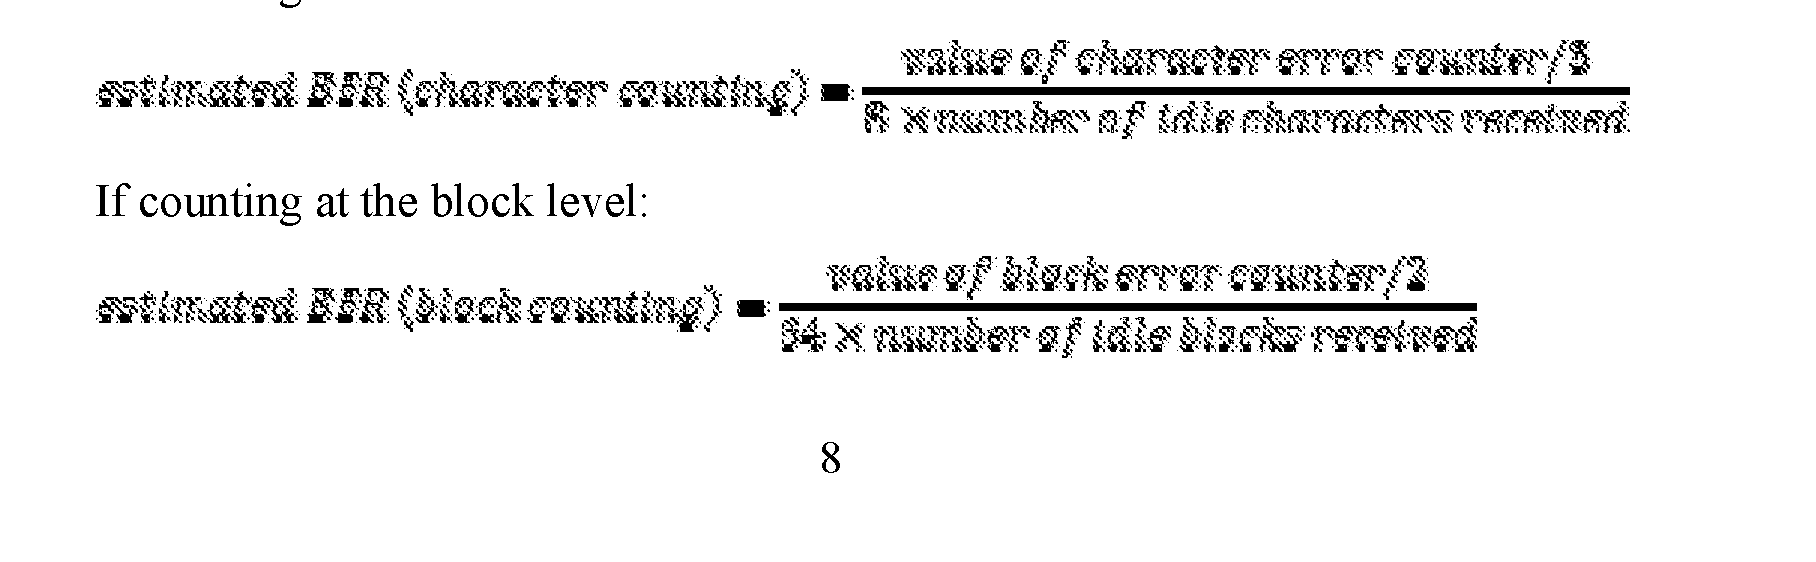 WO2016144953A1 - Monitoring errors during idle time in ethernet pcs